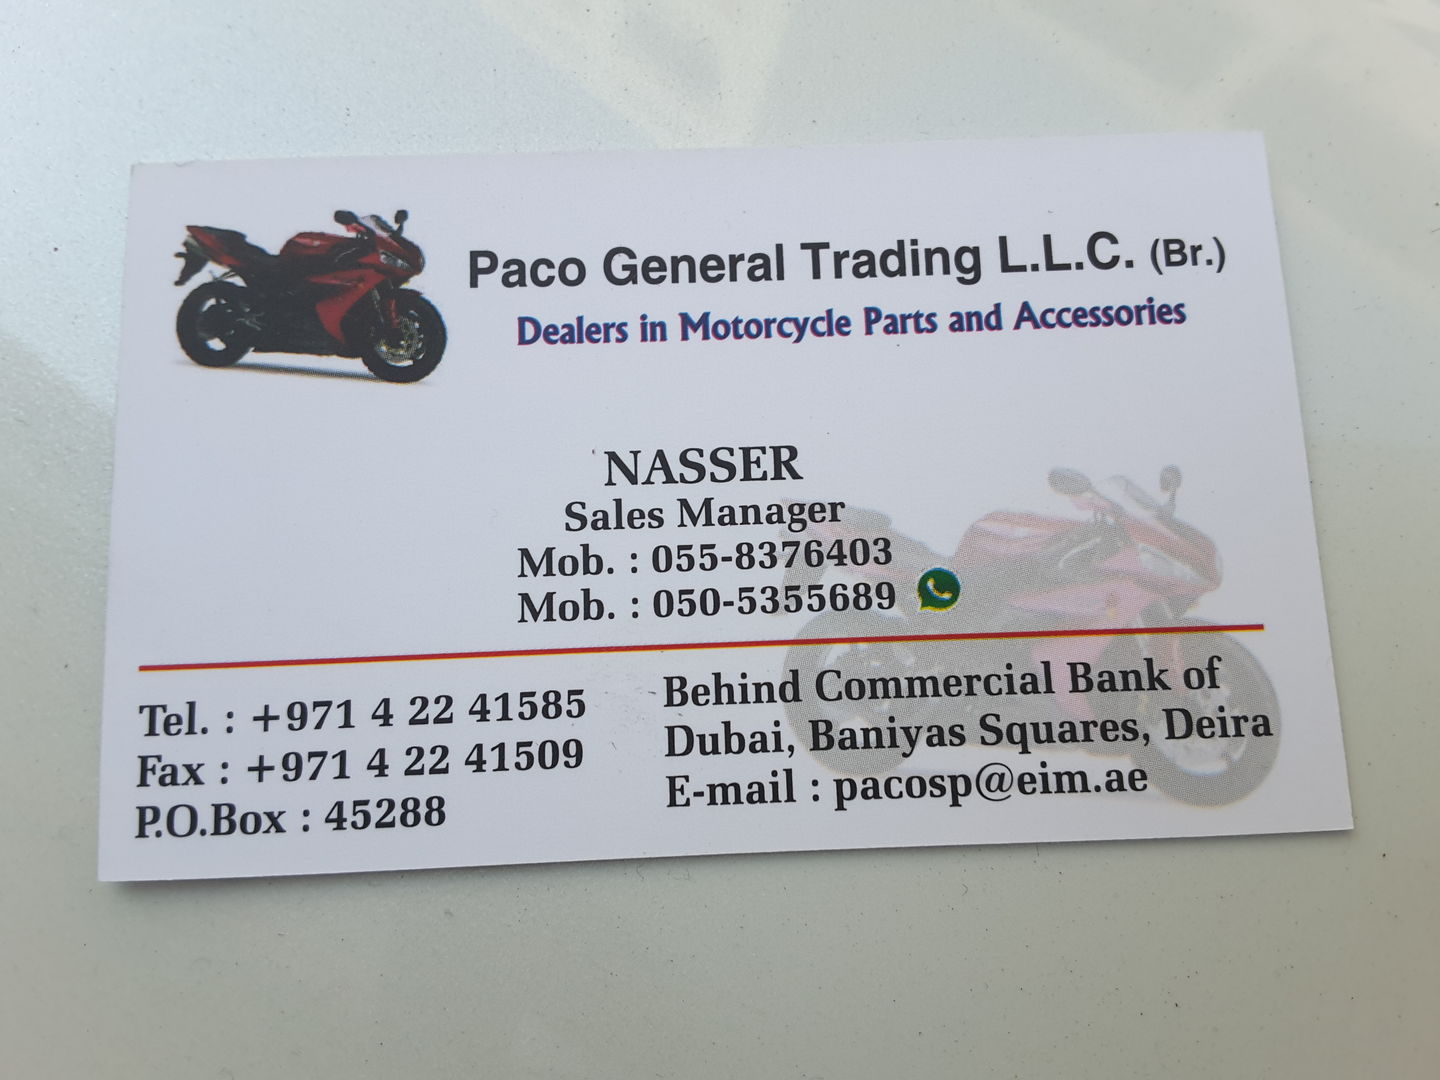 HiDubai-business-paco-general-trading-transport-vehicle-services-motorcycle-spare-parts-accessories-baniyas-square-dubai-2